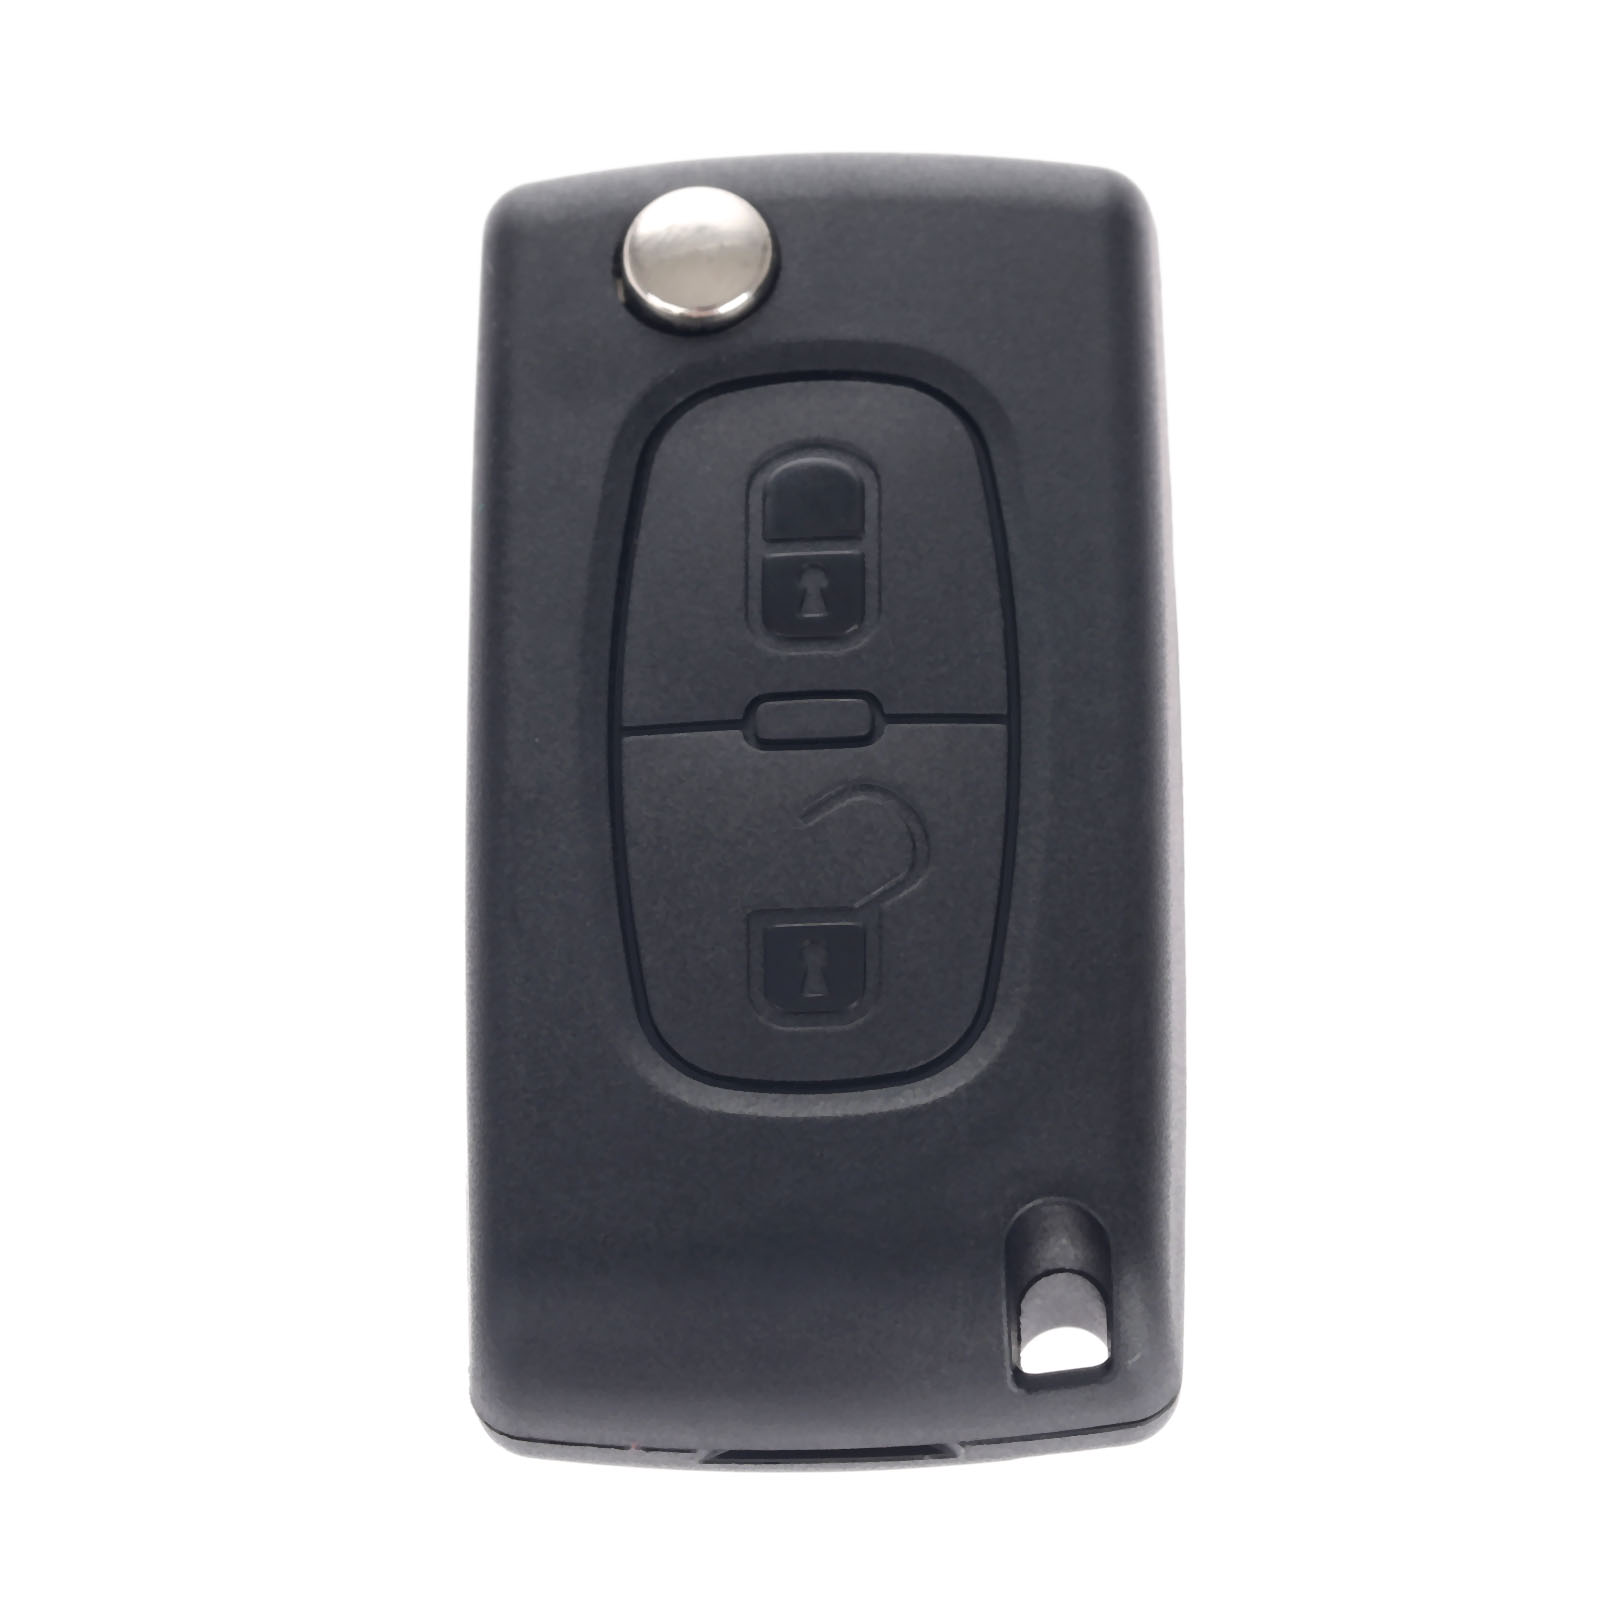 Image 5 - 2 Buttons Auto Flip Folding Remote Car Key Shell Case Cover For Citroen C2 C3 C5 Blank Blade Replacement Key Entry Fob-in Car Key from Automobiles & Motorcycles